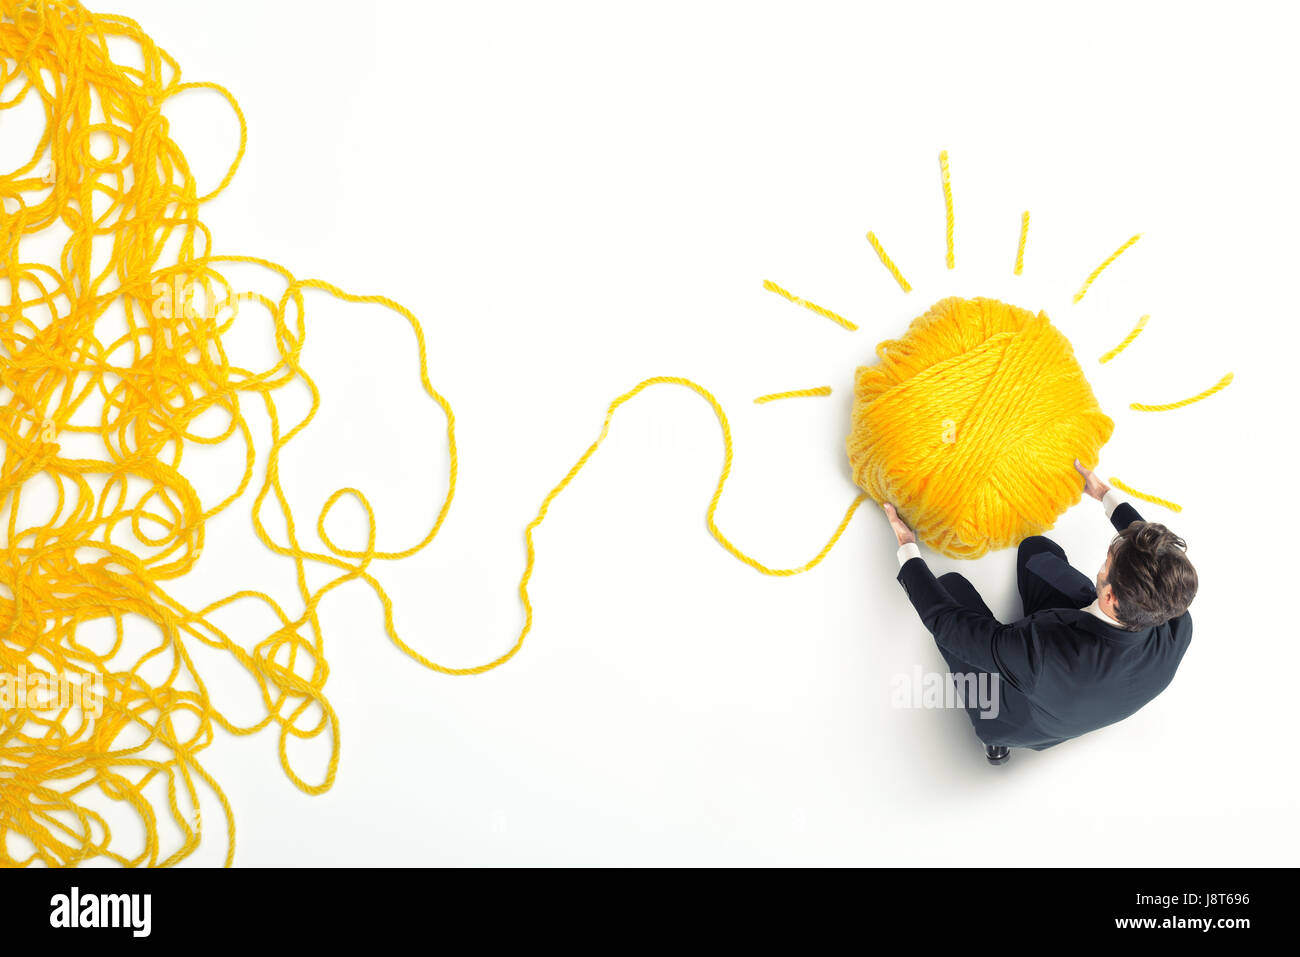 Concept of solution and innovation with wool ball - Stock Image